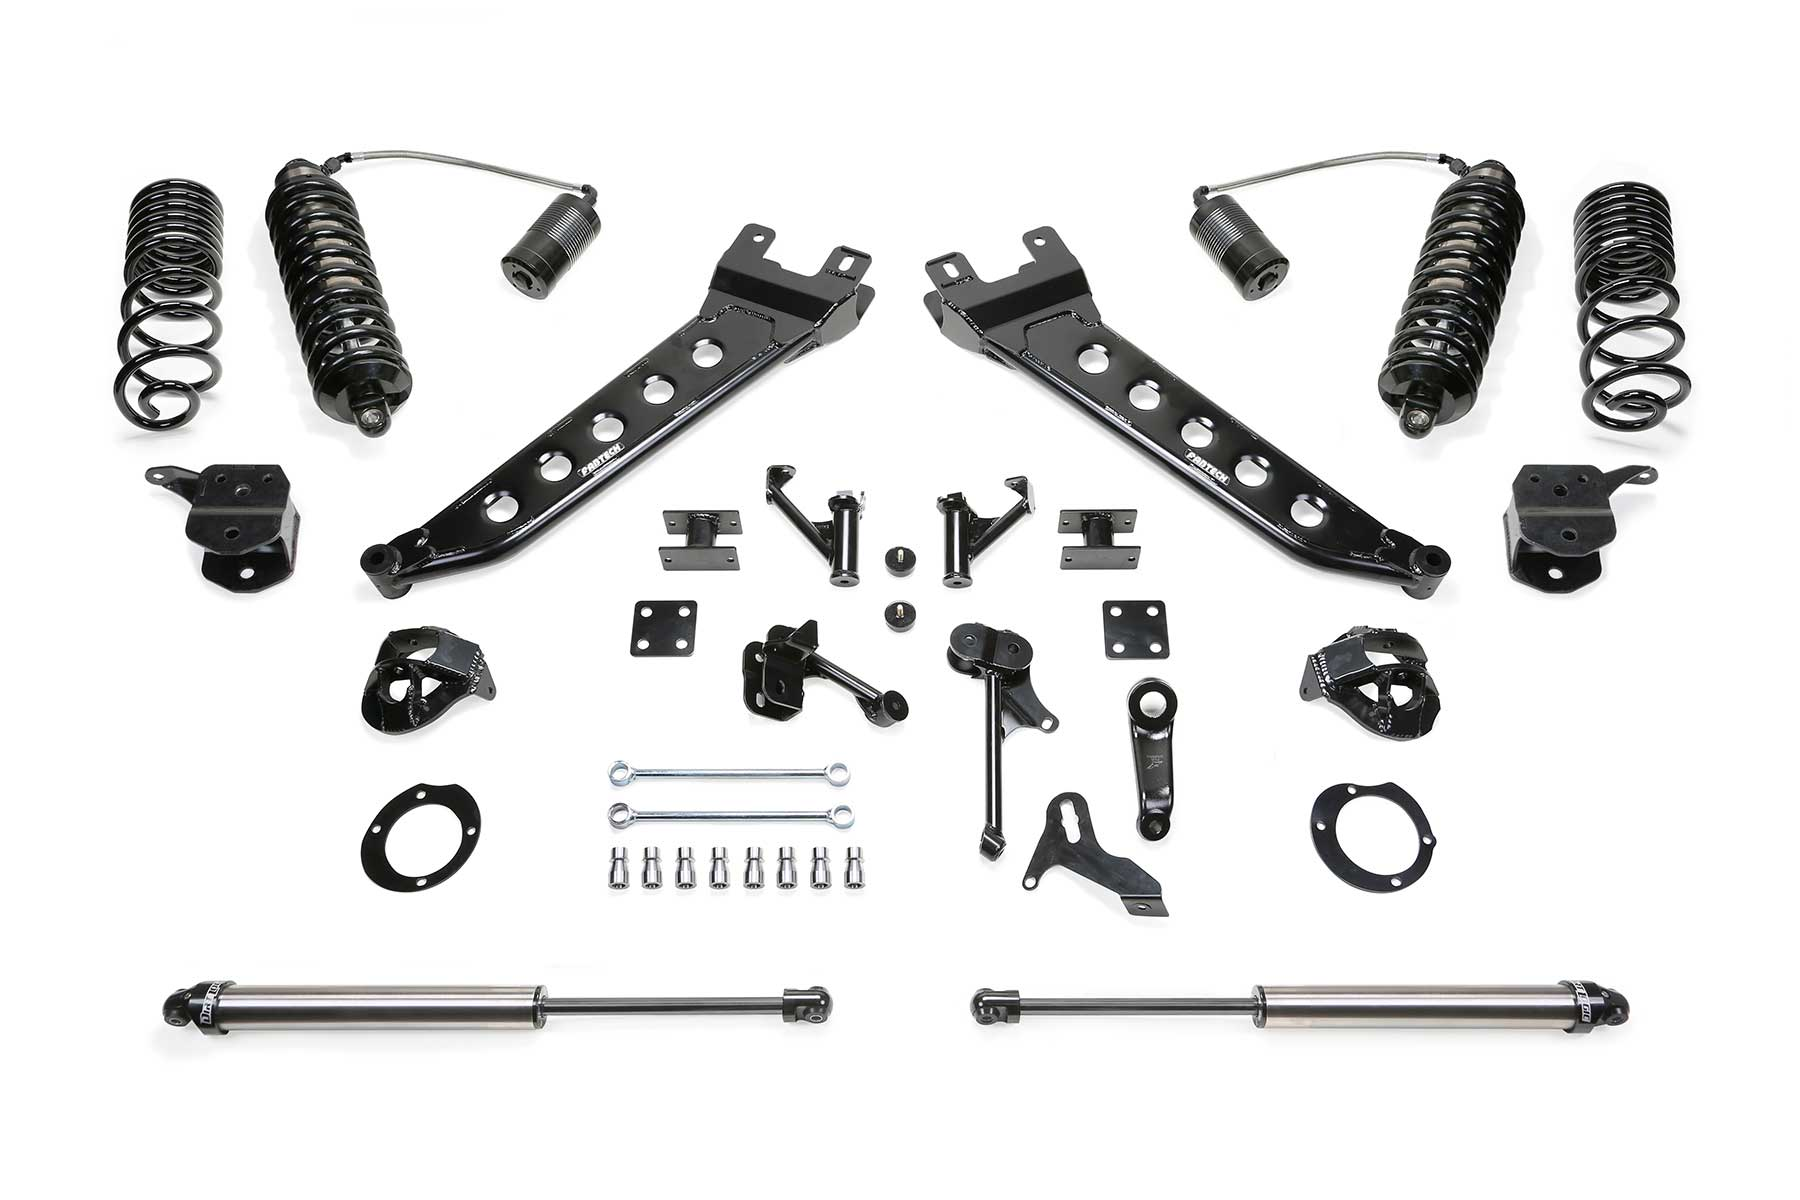 72157625808684573 besides Gmc Transfer Case Wiring Diagram likewise 7 Radius Arm System W Dirt Logic 4 0 Resi Coilovers Dirt Logic Shocks K3075dl in addition P 0900c15280062592 additionally Drive Belt Diagram Wiring Photos For Help Your. on 1995 toyota pickup lifted